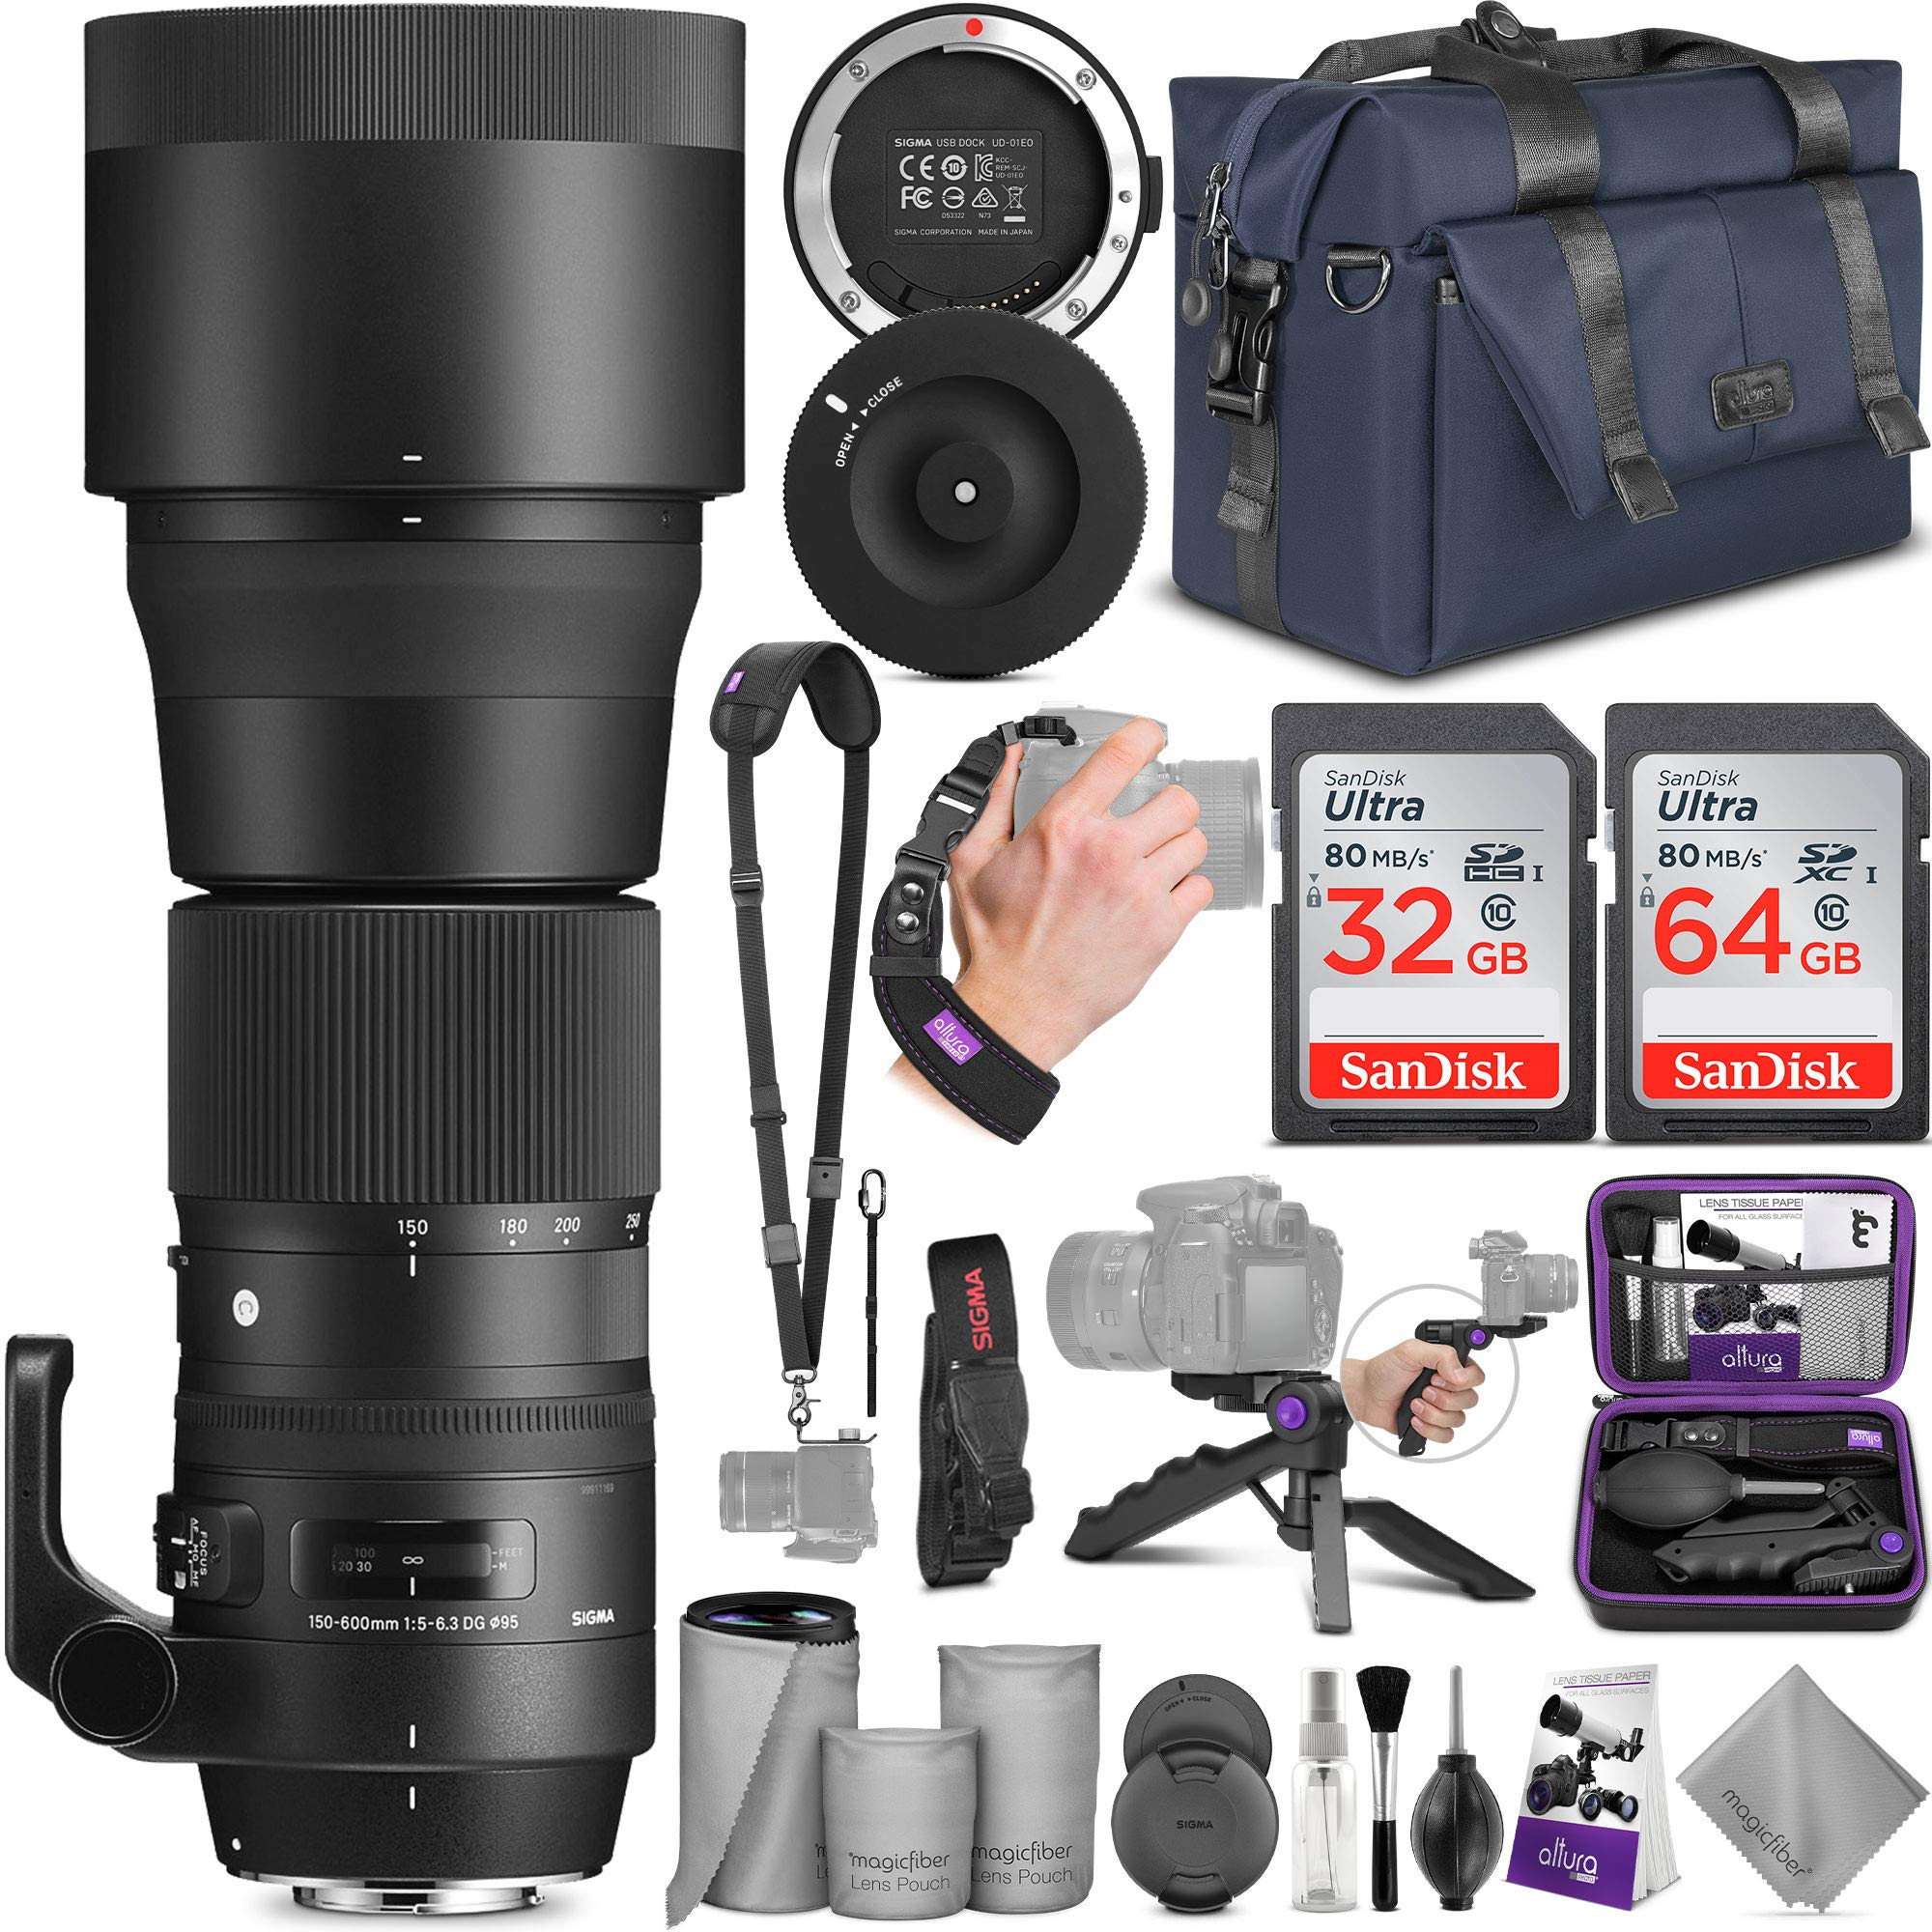 Sigma 150-600mm 5-6.3 Contemporary DG OS HSM Lens for Nikon DSLR Cameras + Sigma USB Dock with Altura Photo Complete Accessory and Travel Bundle by Sigma